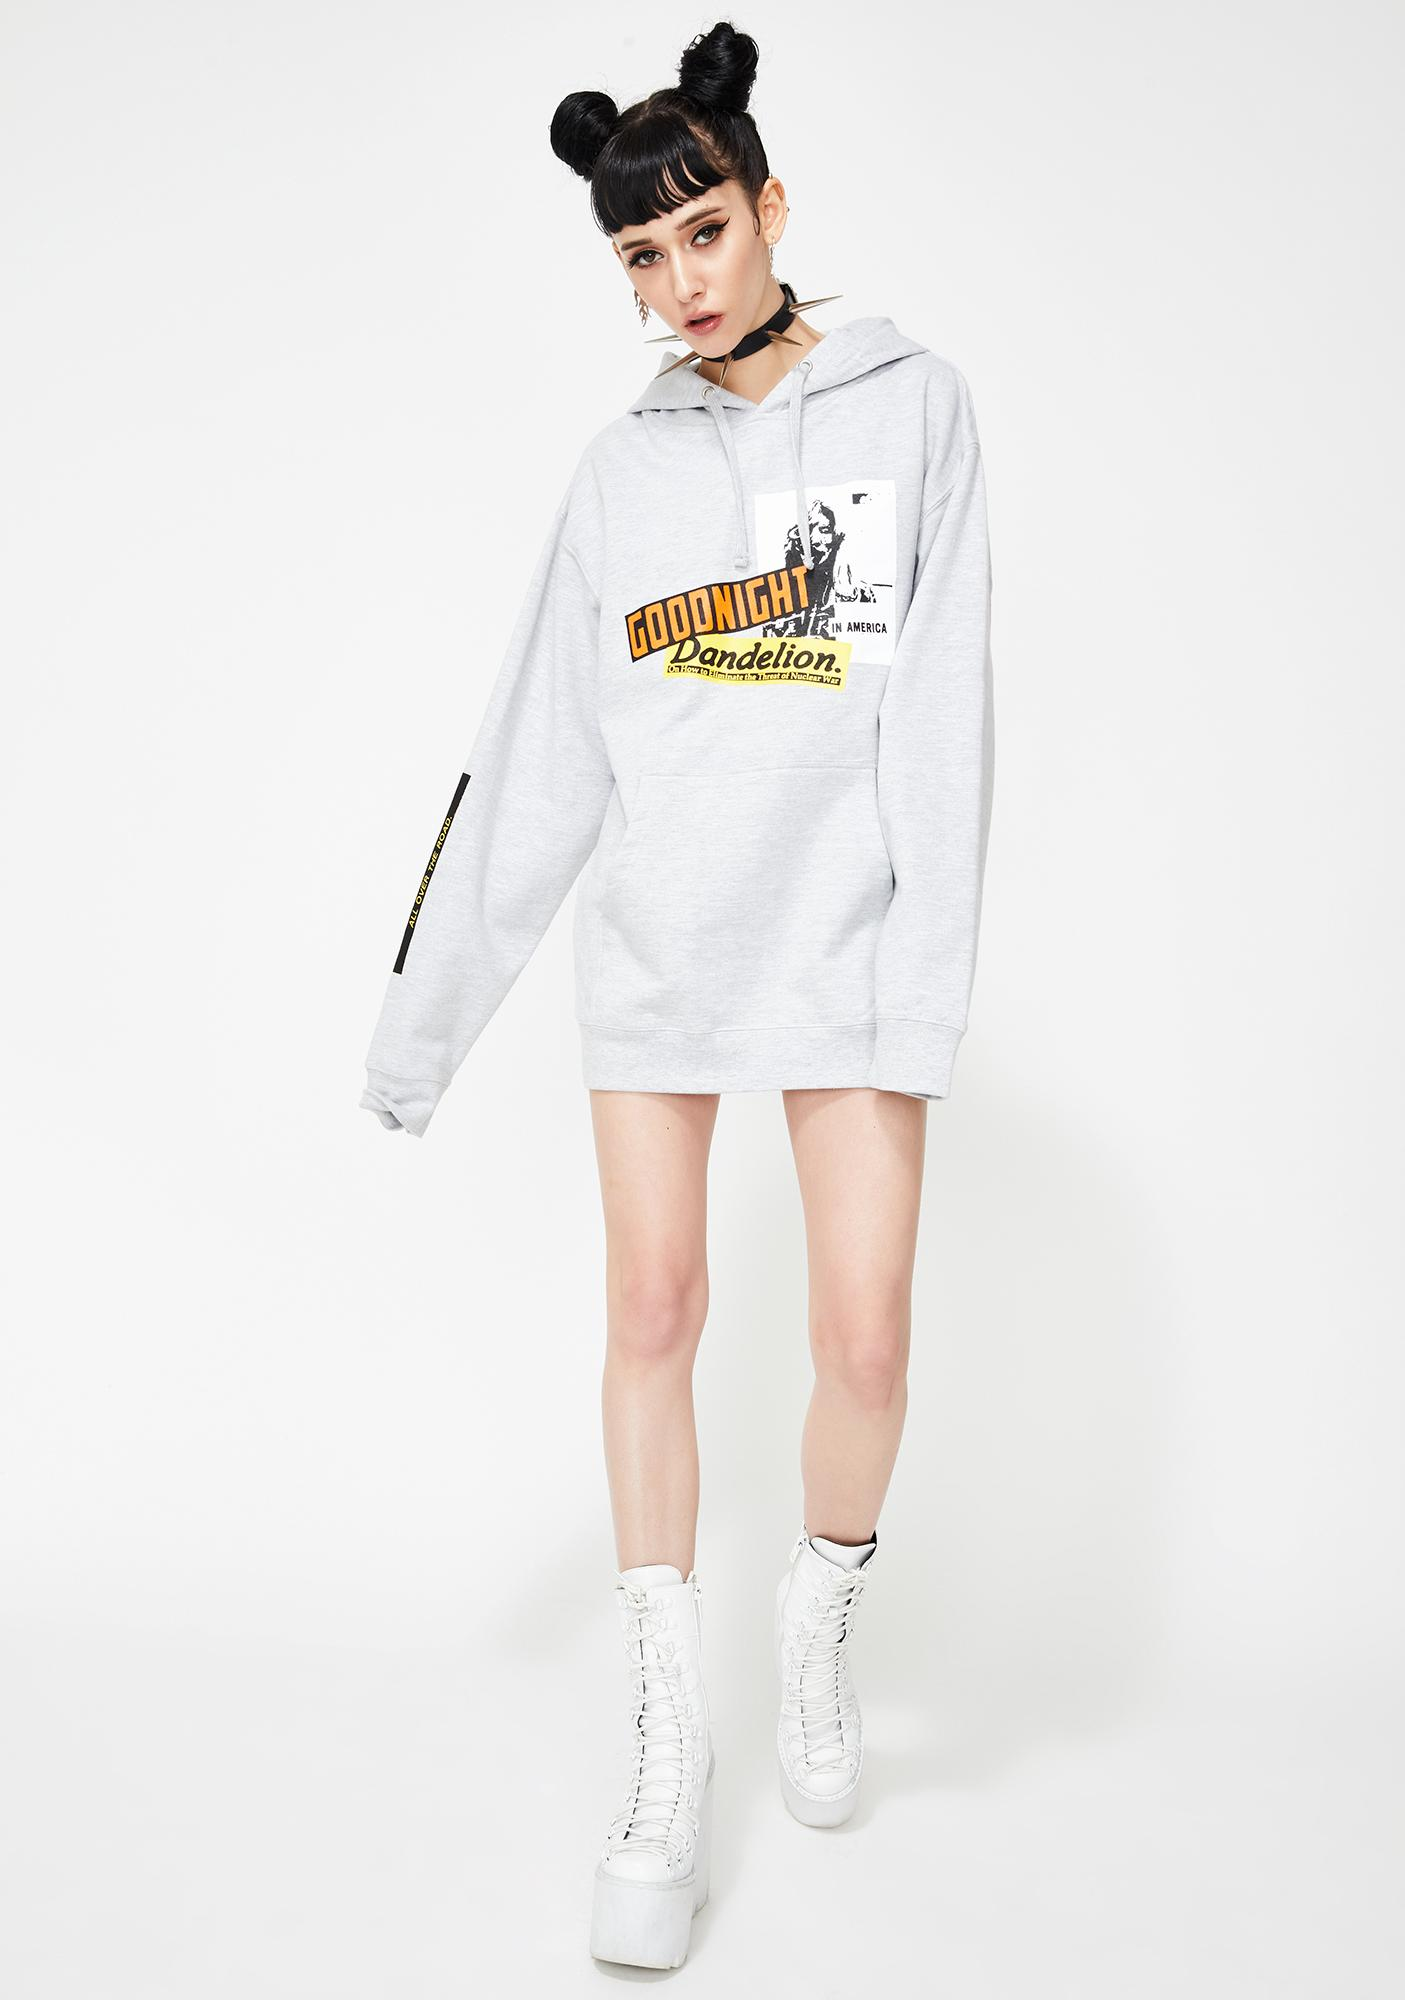 BOW3RY Dandelion Pullover Hoodie